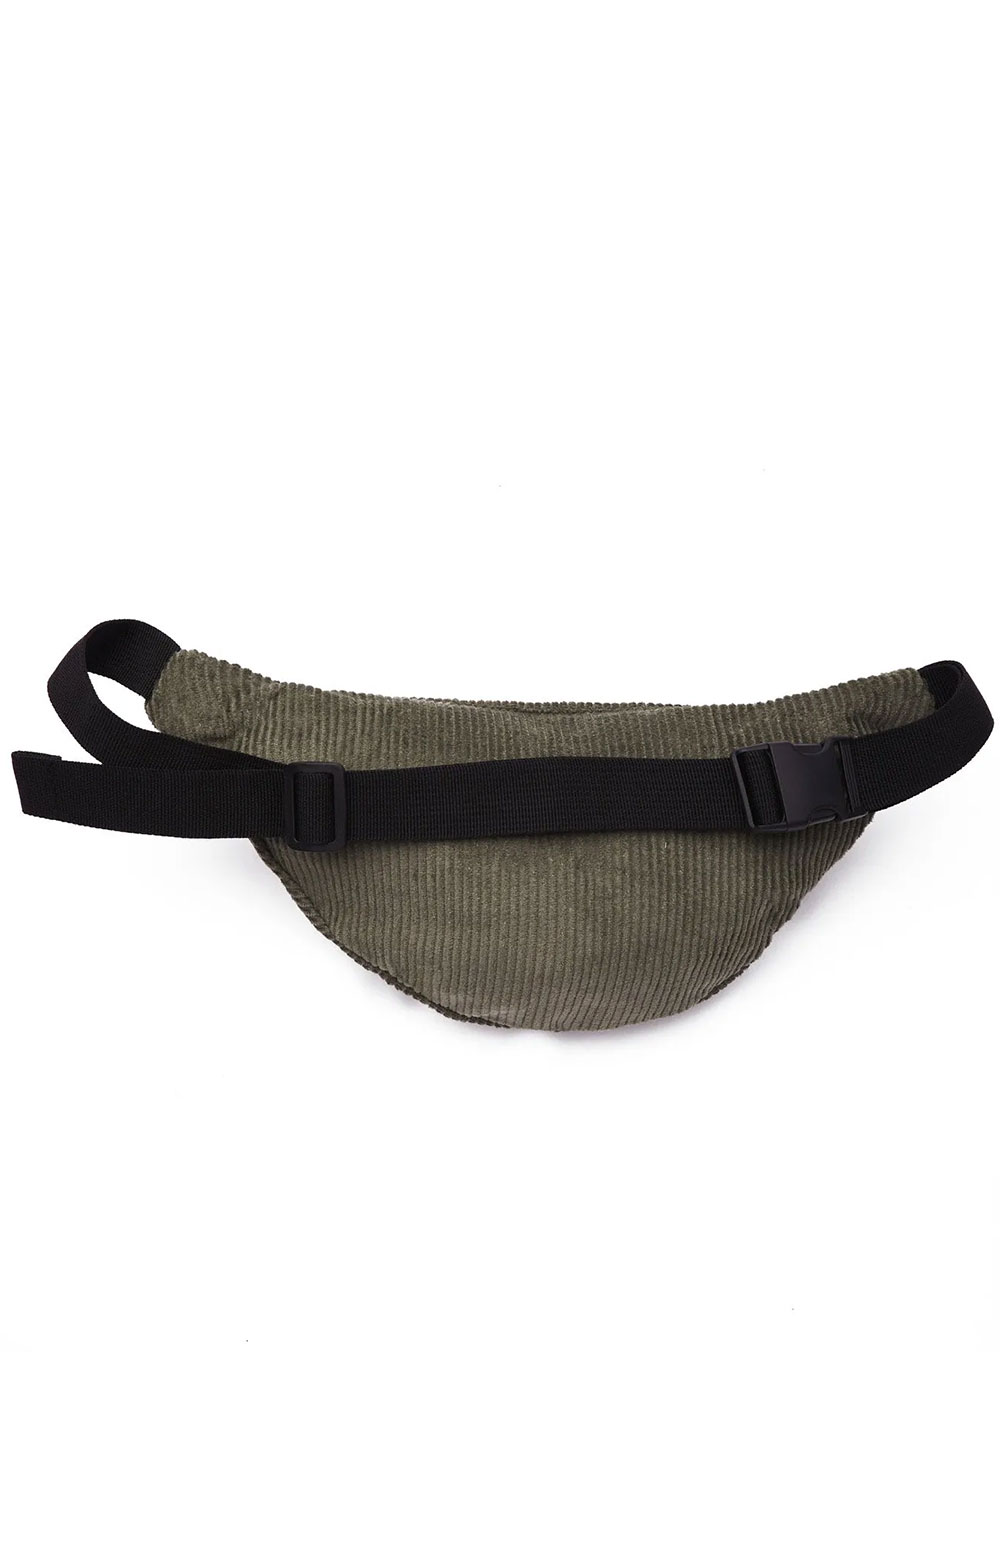 Wasted Hip Bag - Army  2